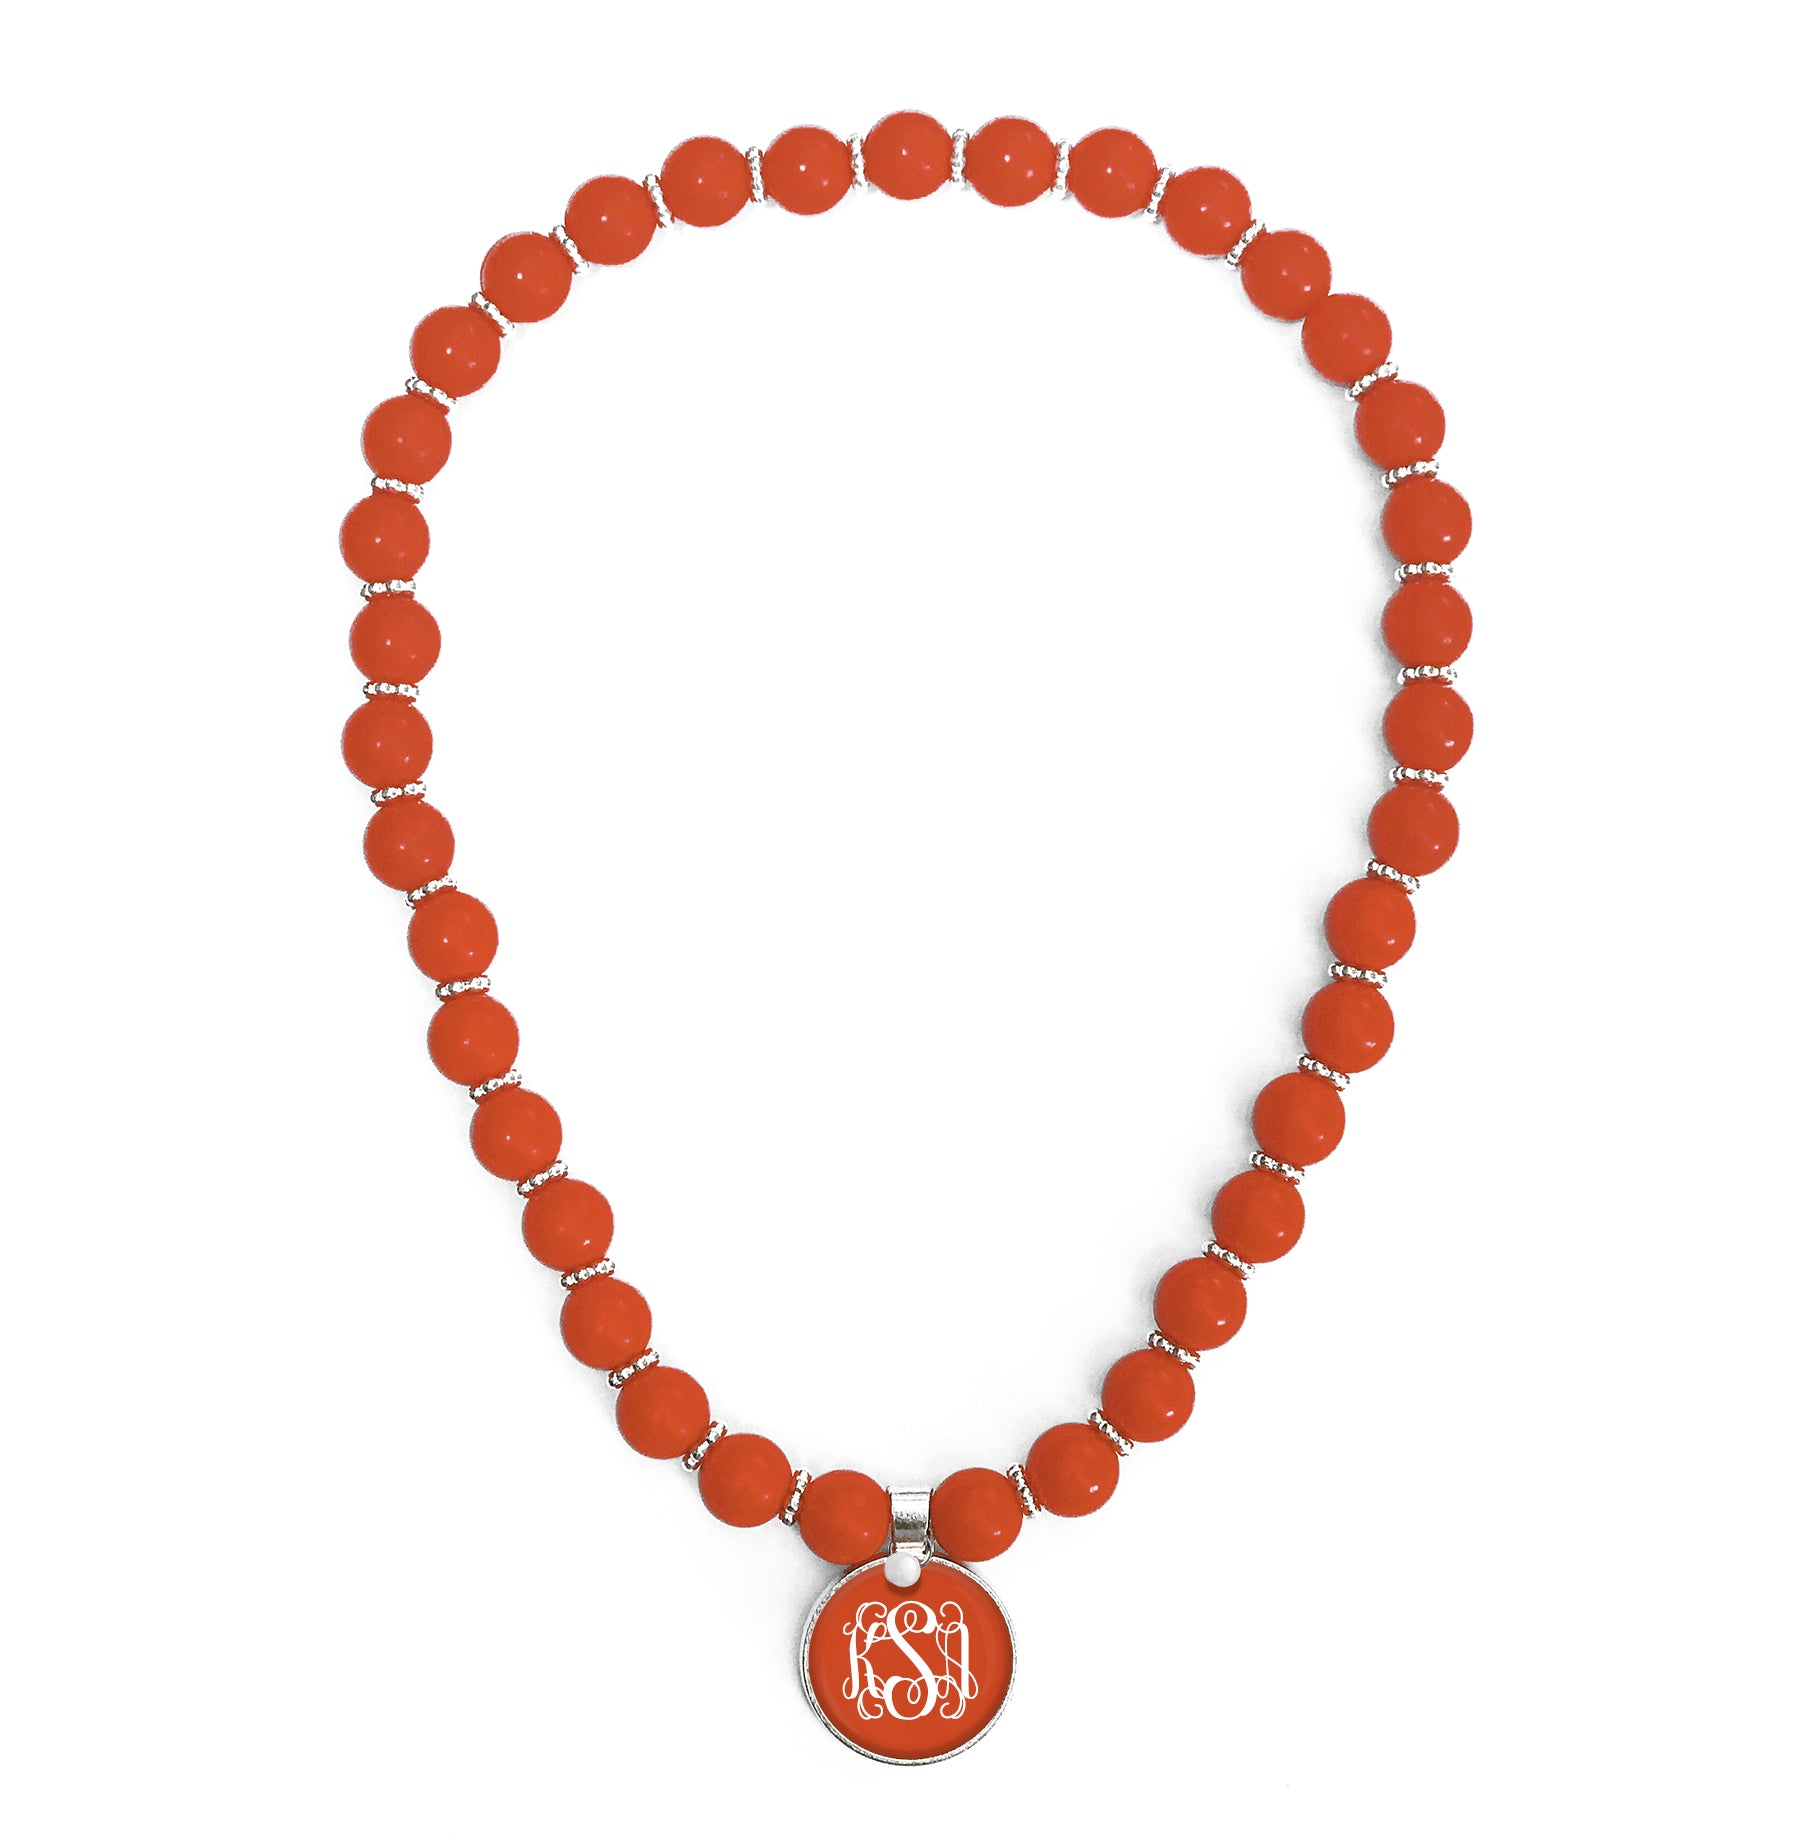 Beaded Monogram Necklace - Clementine